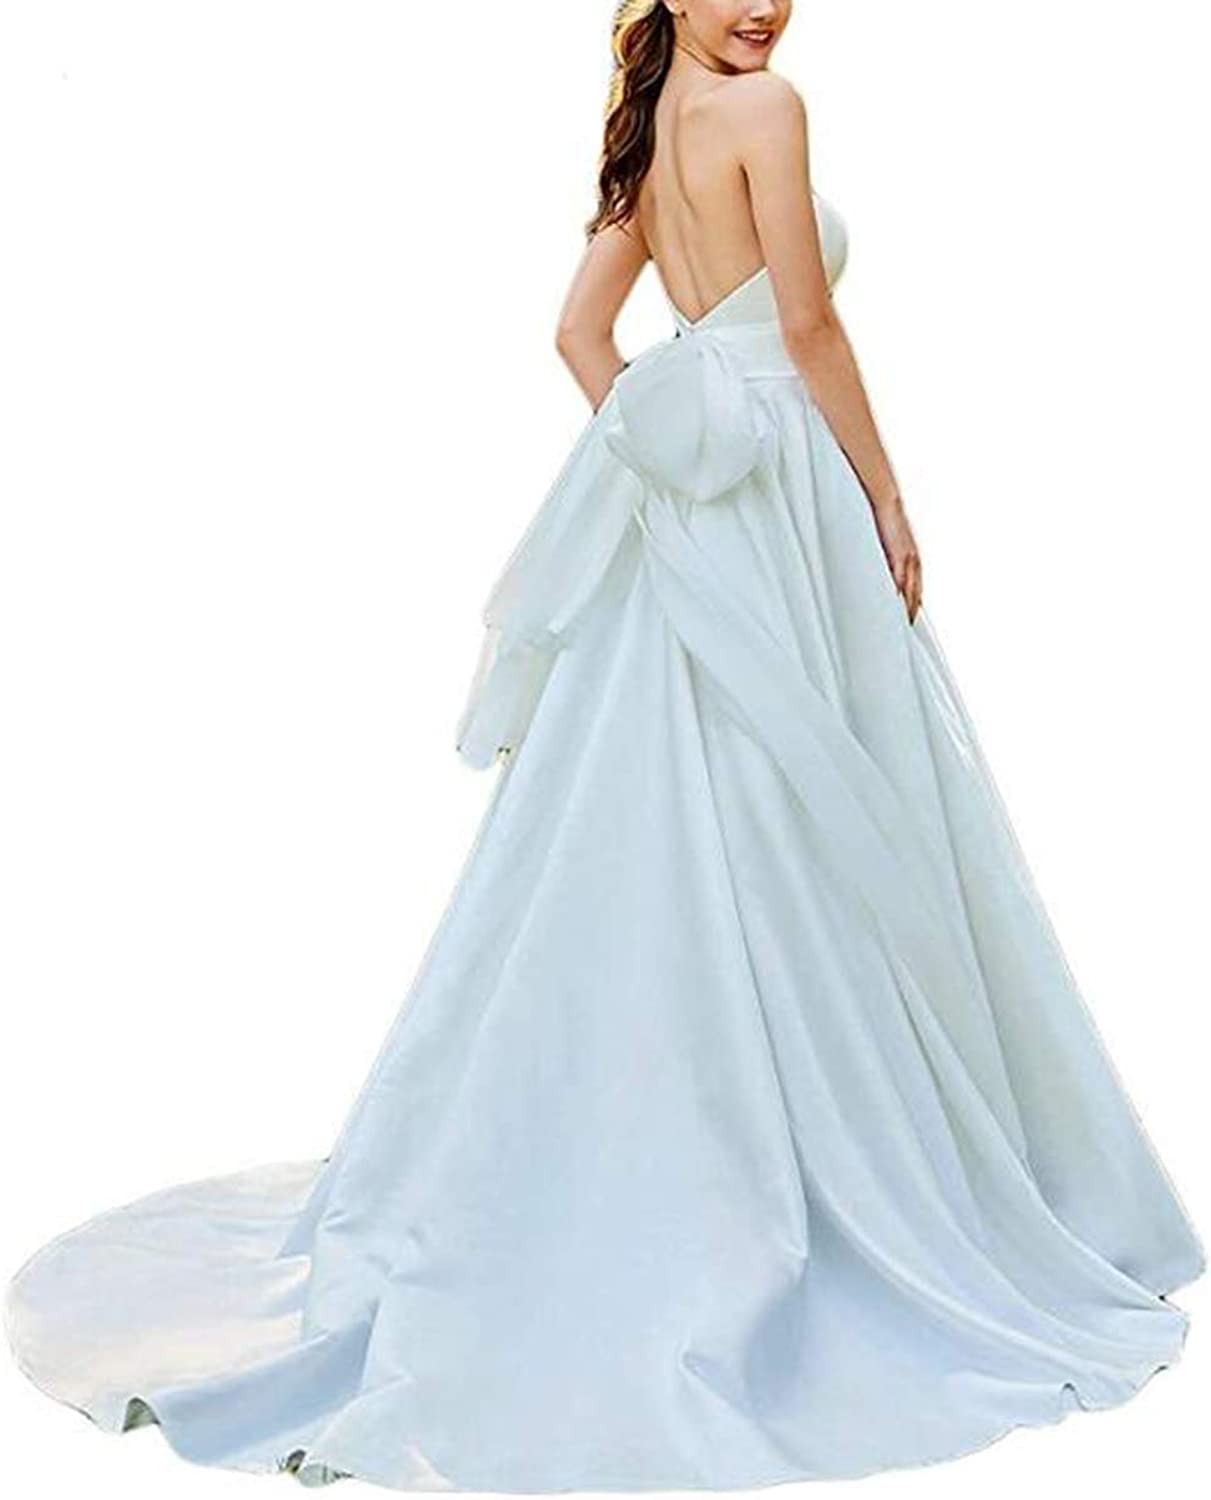 Alilith.Z Sexy Sweetheart Wedding Dresses for Bride 2019 Long Bridal Wedding Gowns for Women with Bowknot